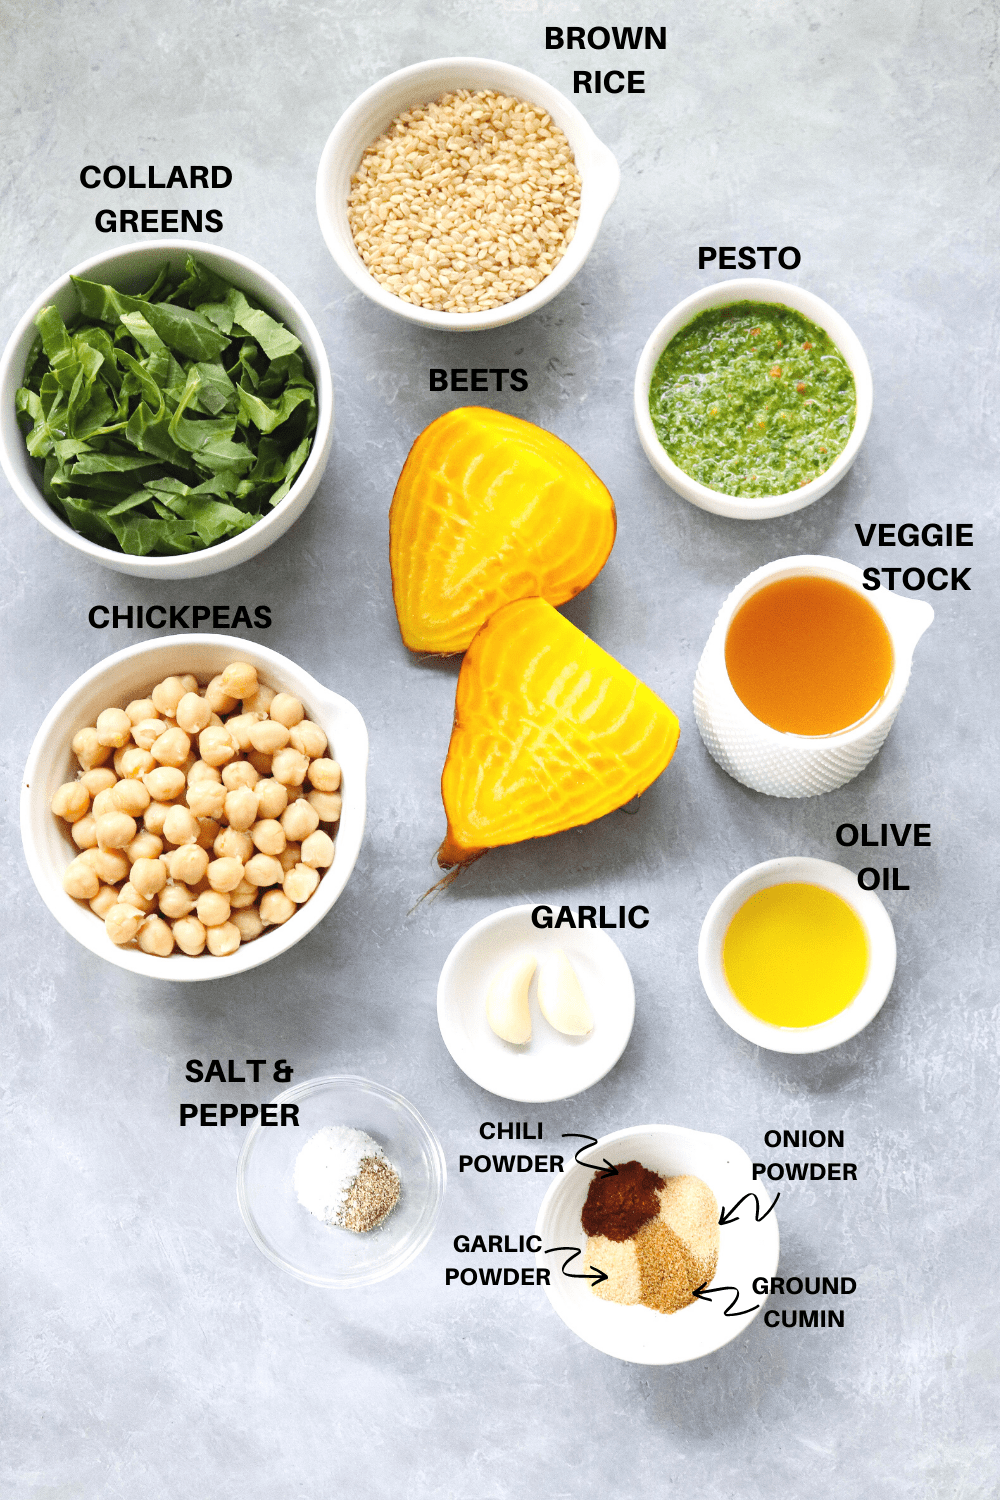 Beets, chickpeas, collards greens and other  ingredients on a gray board